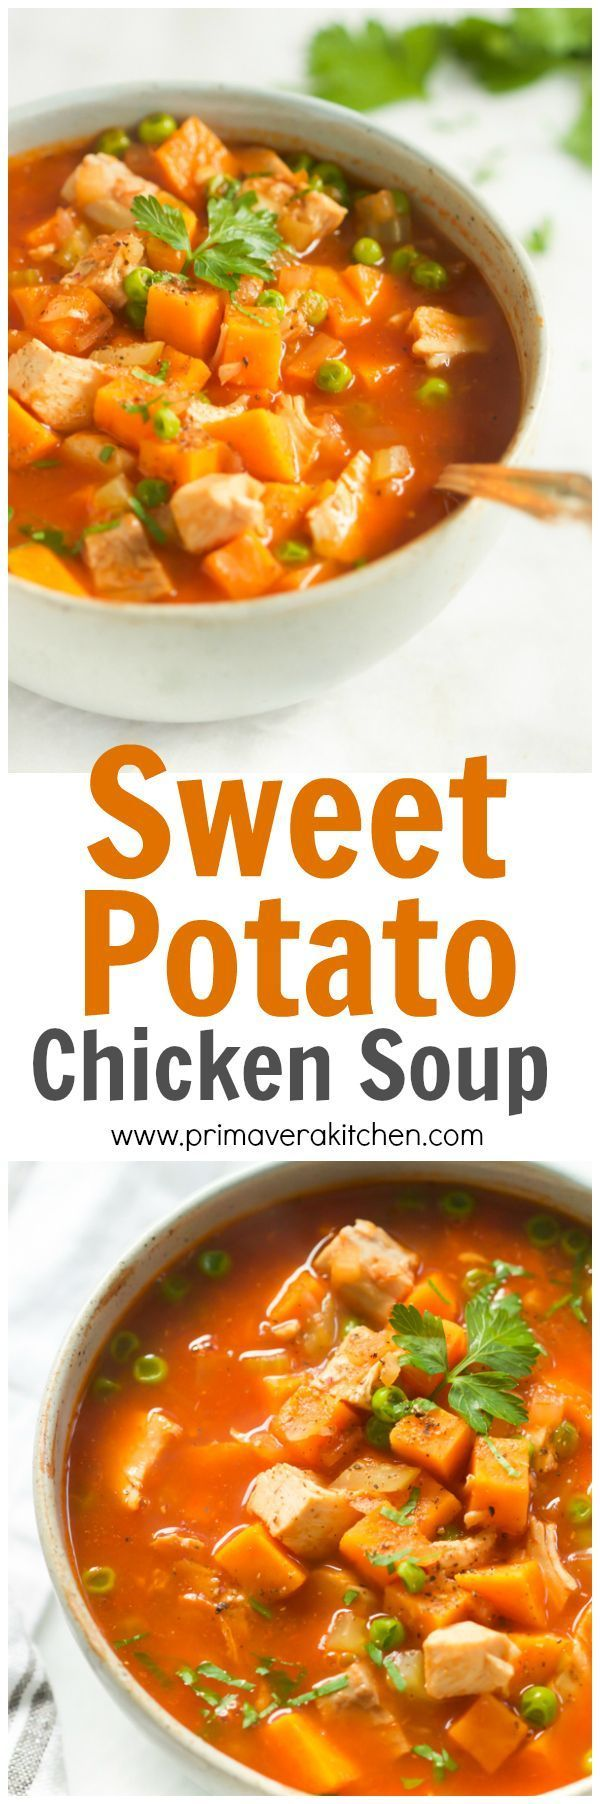 This hearty, healthy and comforting Sweet Potato Chicken Soup is made in less than 30 minutes. It's low-carb, gluten-free and paleo-friendly too. | www.primaverakitc...